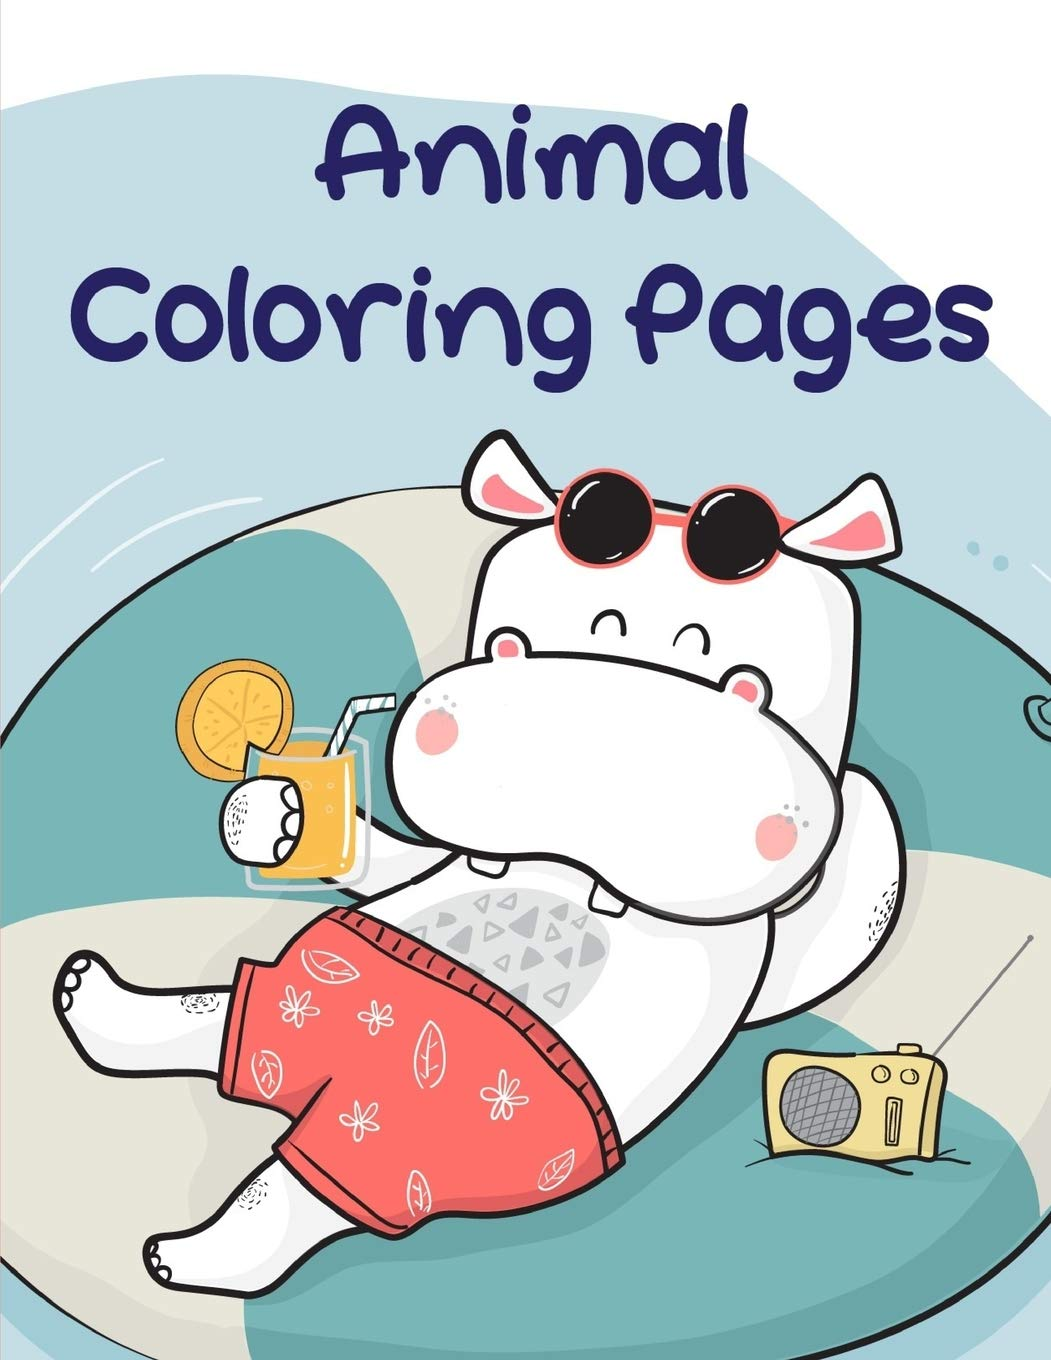 Amazon Com Animal Coloring Pages Baby Cute Animals Design And Pets Coloring Pages For Boys Girls Children Books For Grown Ups 9781712419212 Mimo J K Books